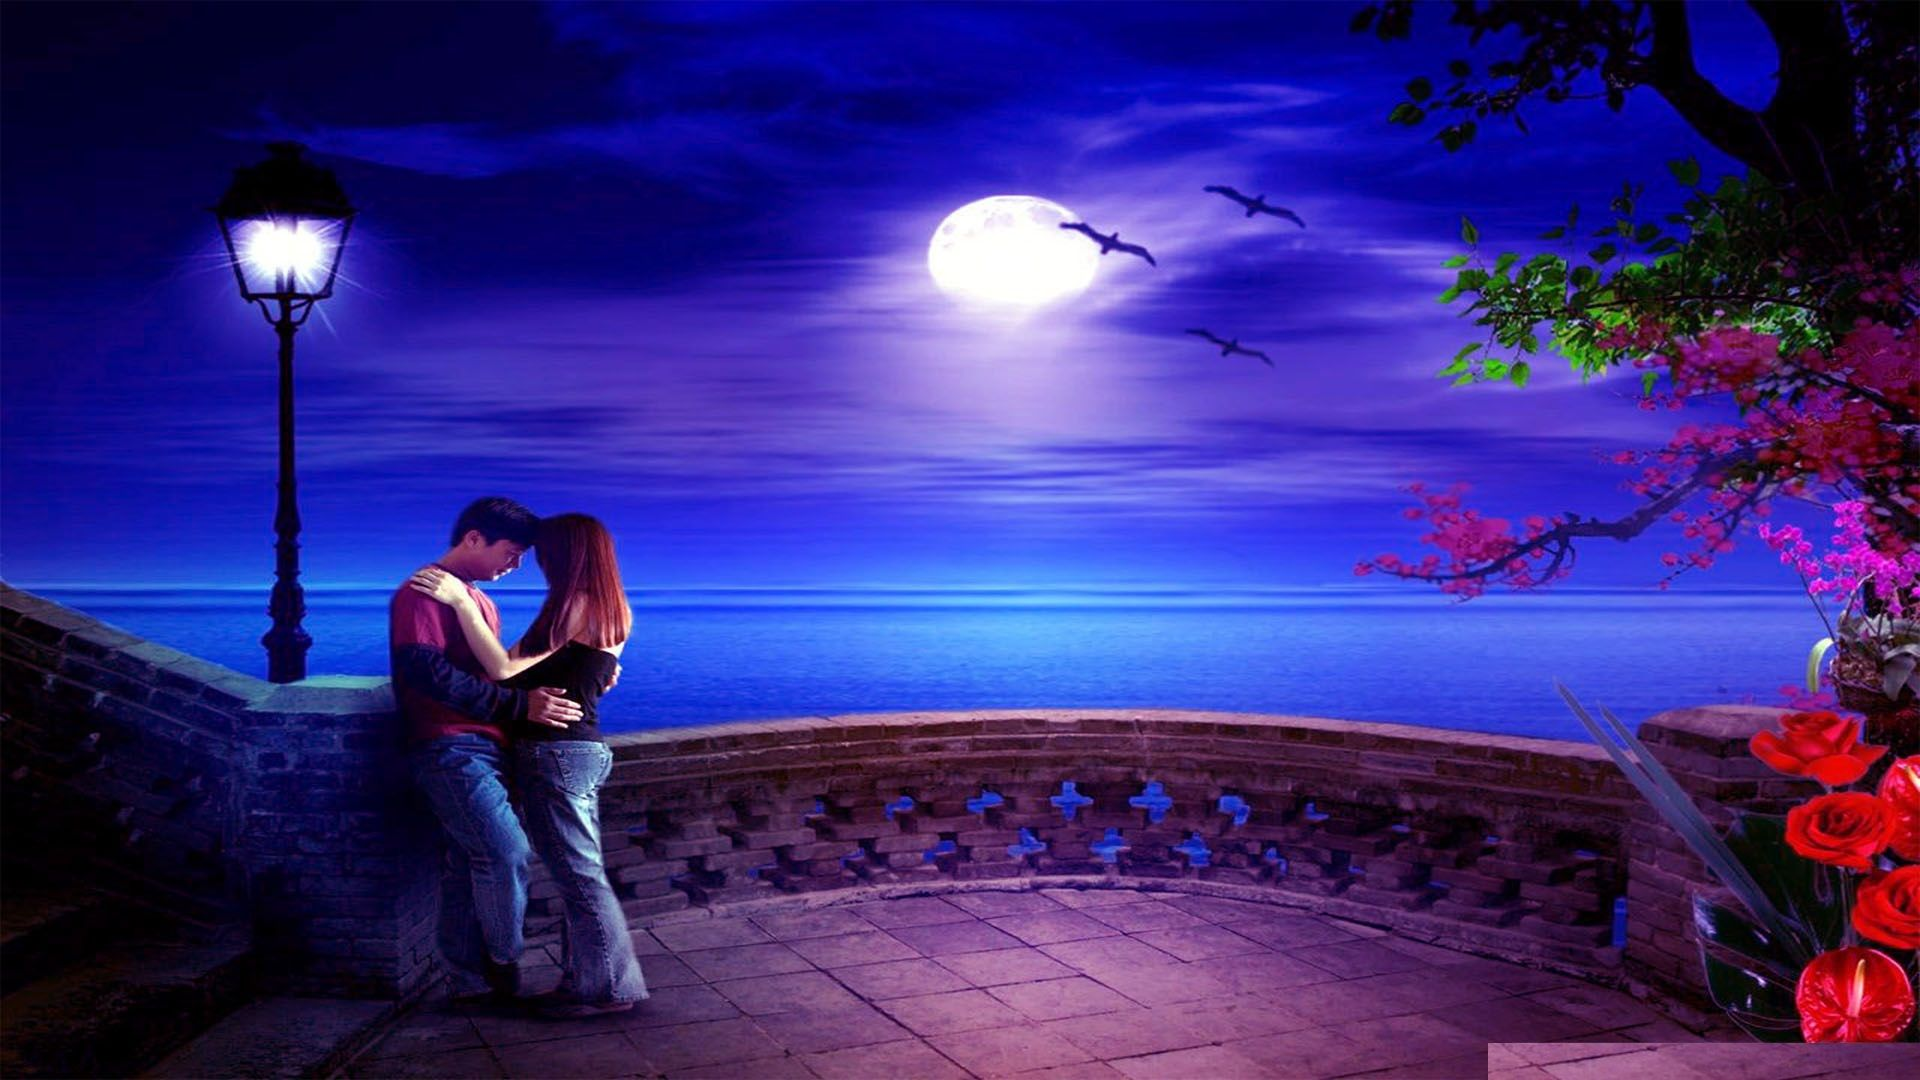 Wallpaper Hd Love Romantic For Mobile : Romantic Love HD Wallpapers : Find best latest Romantic Love HD Wallpapers for your Pc desktop ...